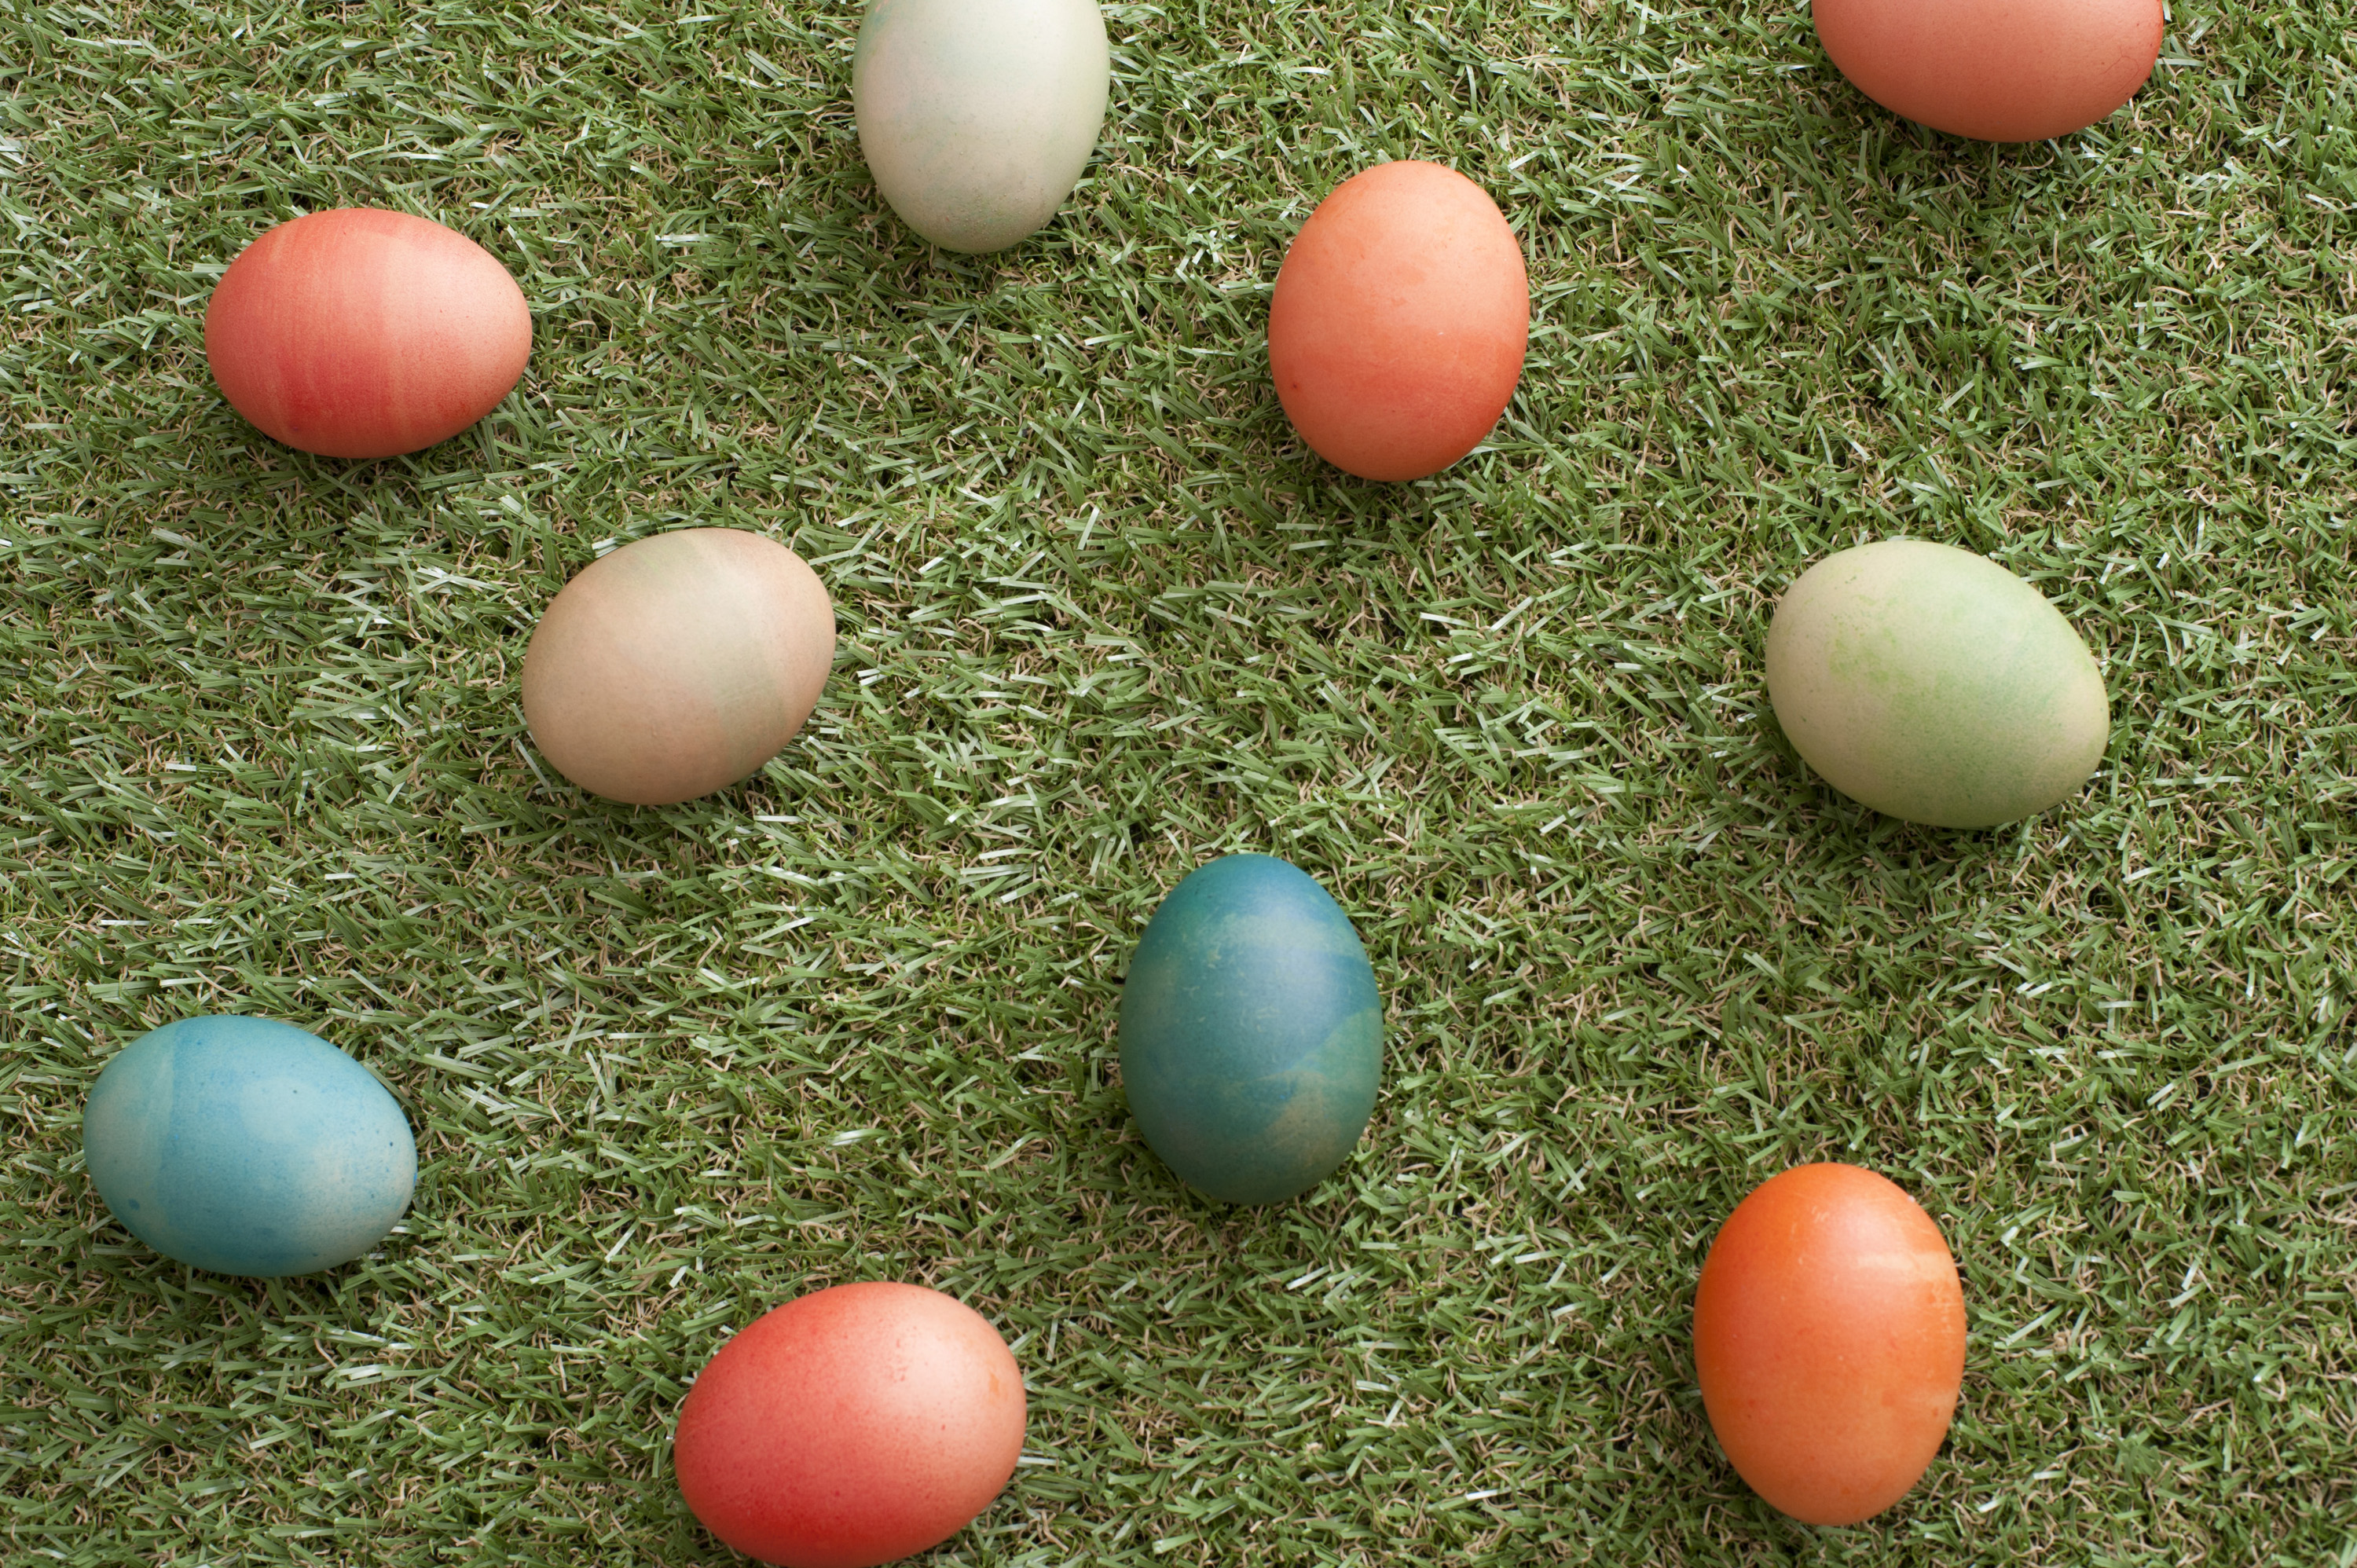 easter_eggs_background.jpg - Ten colorful Easter eggs placed gently on grass as seen from an overhead view